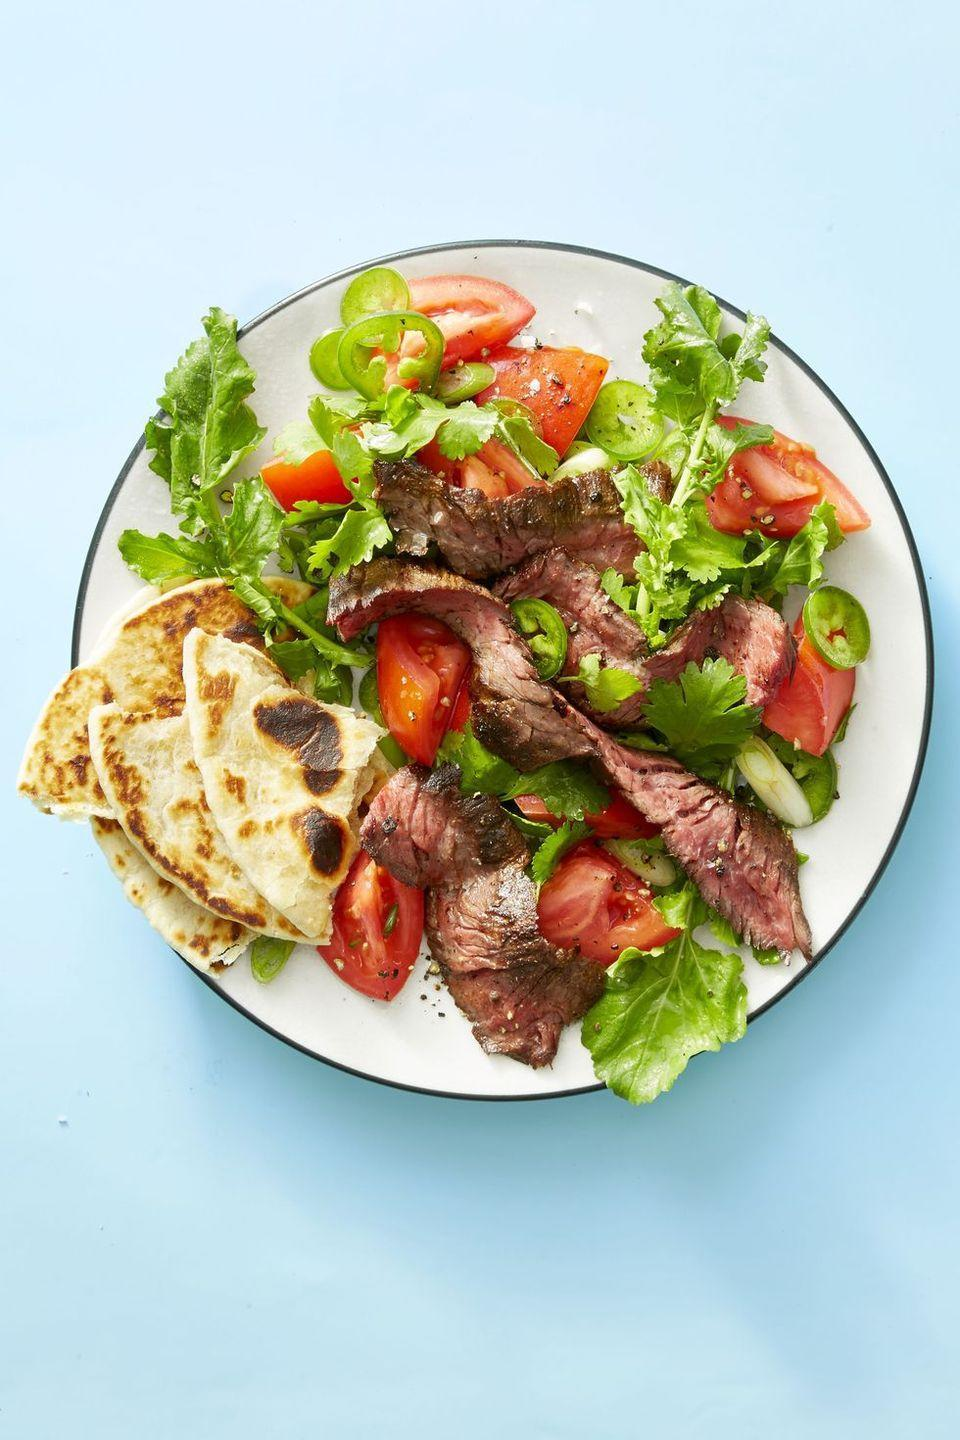 """<p>Hello, upgraded taco salad! It's all of your favorite bits and pieces of a great taco rolled into a rustic salad plate.</p><p><a href=""""https://www.goodhousekeeping.com/food-recipes/easy/a19855342/grilled-steak-tortilla-salad-recipe/"""" rel=""""nofollow noopener"""" target=""""_blank"""" data-ylk=""""slk:Get the recipe for Swordfish With Summer Salad »"""" class=""""link rapid-noclick-resp""""><em>Get the recipe for Swordfish With Summer Salad »</em></a></p>"""